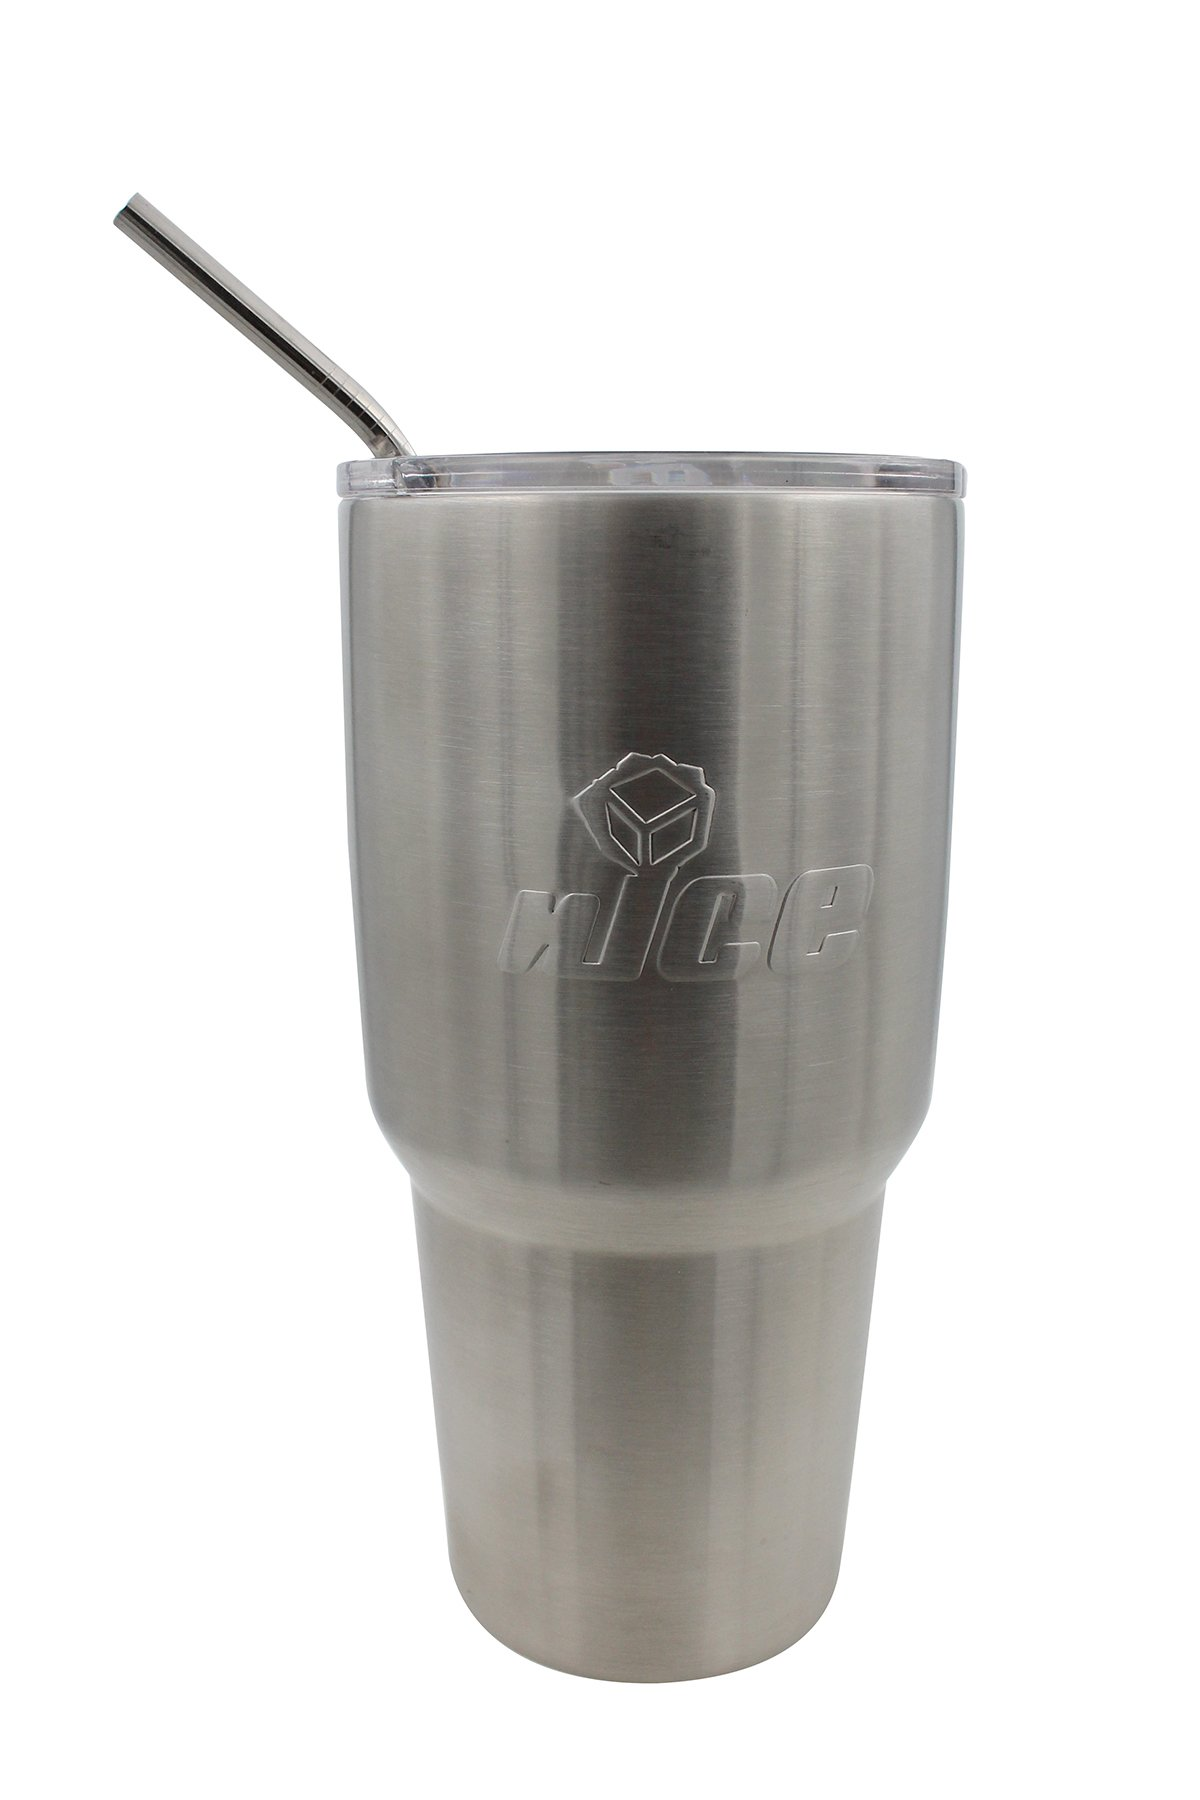 nICE TXG-513860 Steel Tumbler with Straw, Stainless, 30 oz